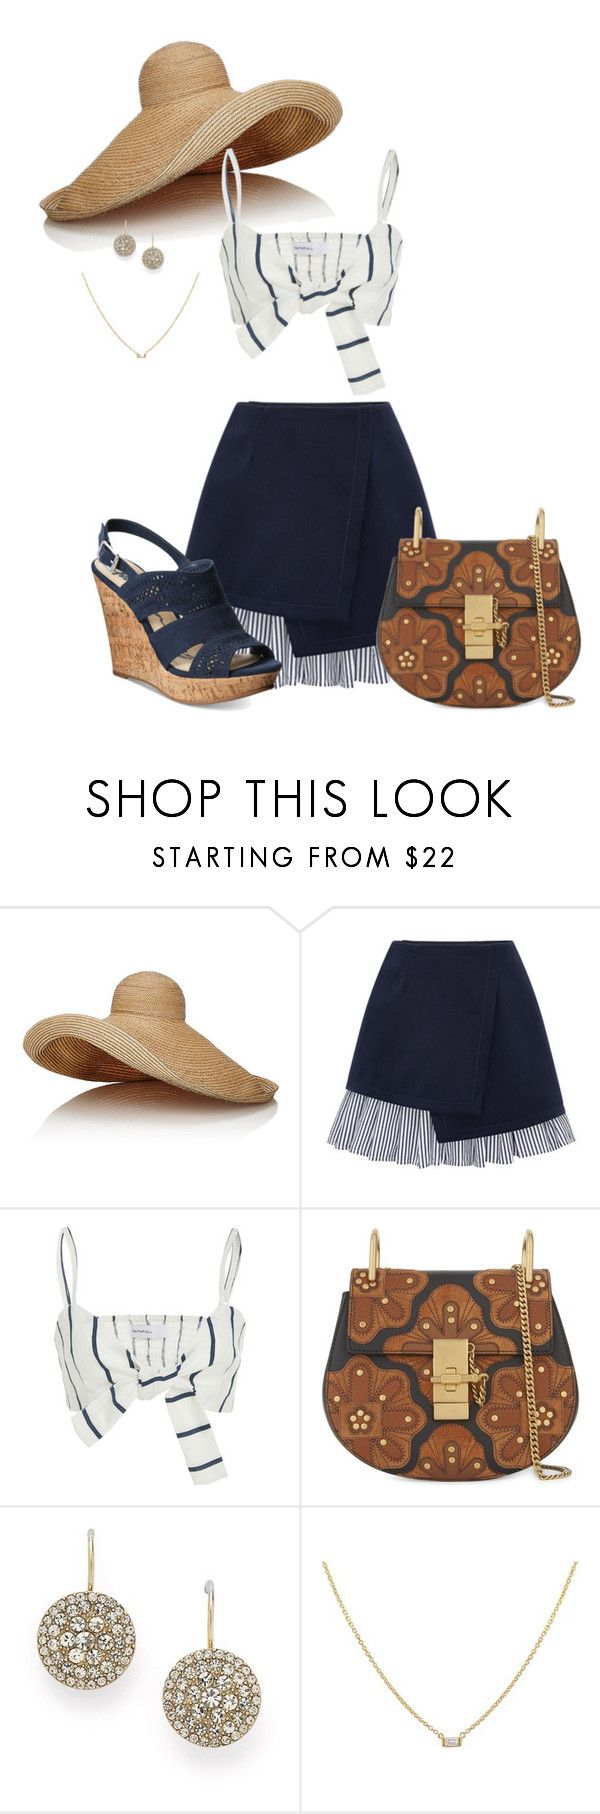 """Untitled #177"" by mmmegs1119 ❤ liked on Polyvore featuring Lola, WithChic, Faithfull, Chloé, FOSSIL and American Rag Cie"